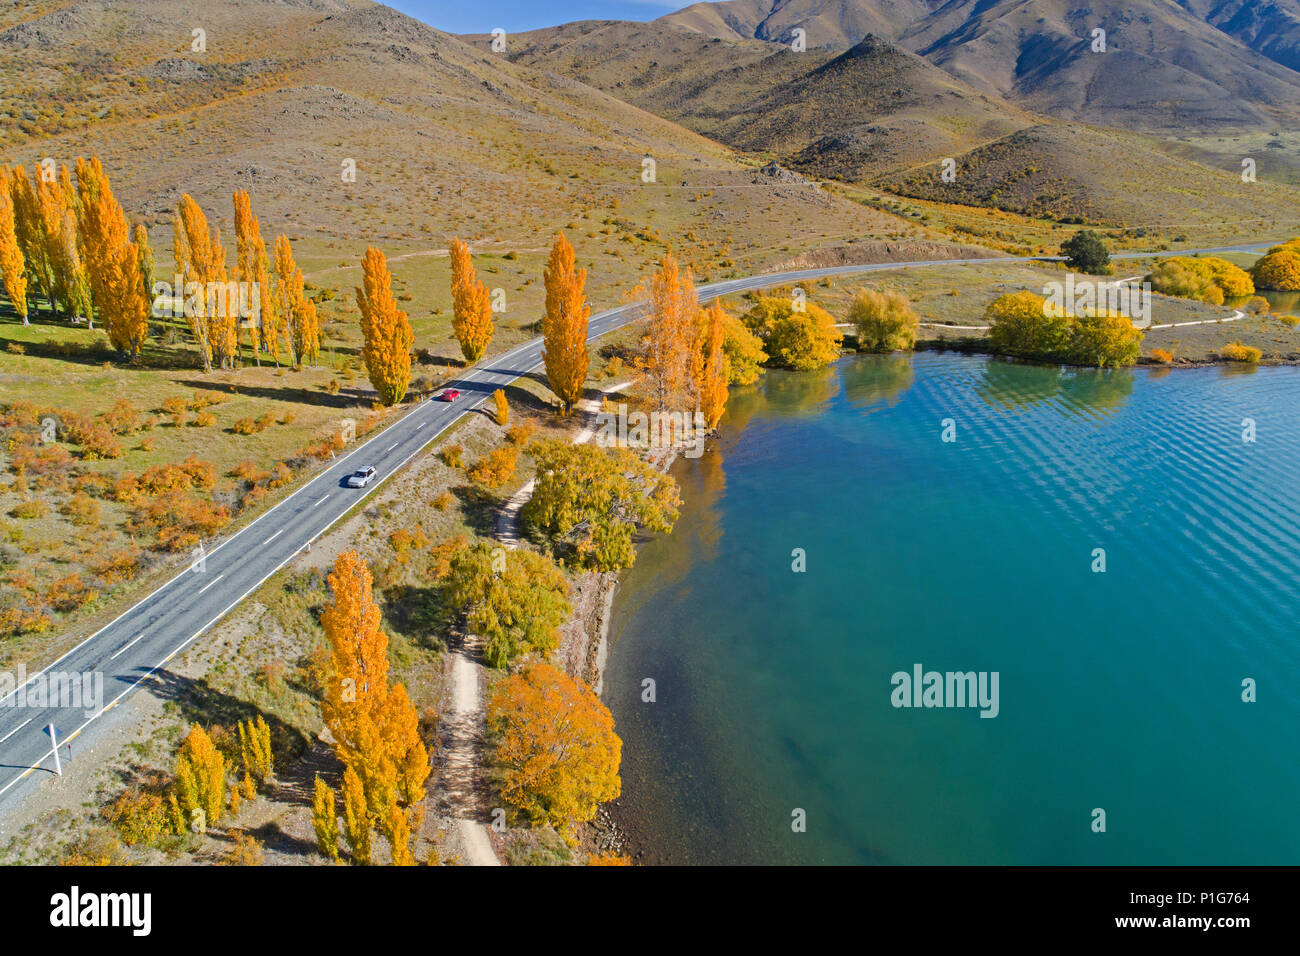 Autobahn und Alpen 2 Ocean Cycle Trail, und Lake Benmore, Waitaki Valley, North Otago, Südinsel, Neuseeland - drone Antenne Stockbild